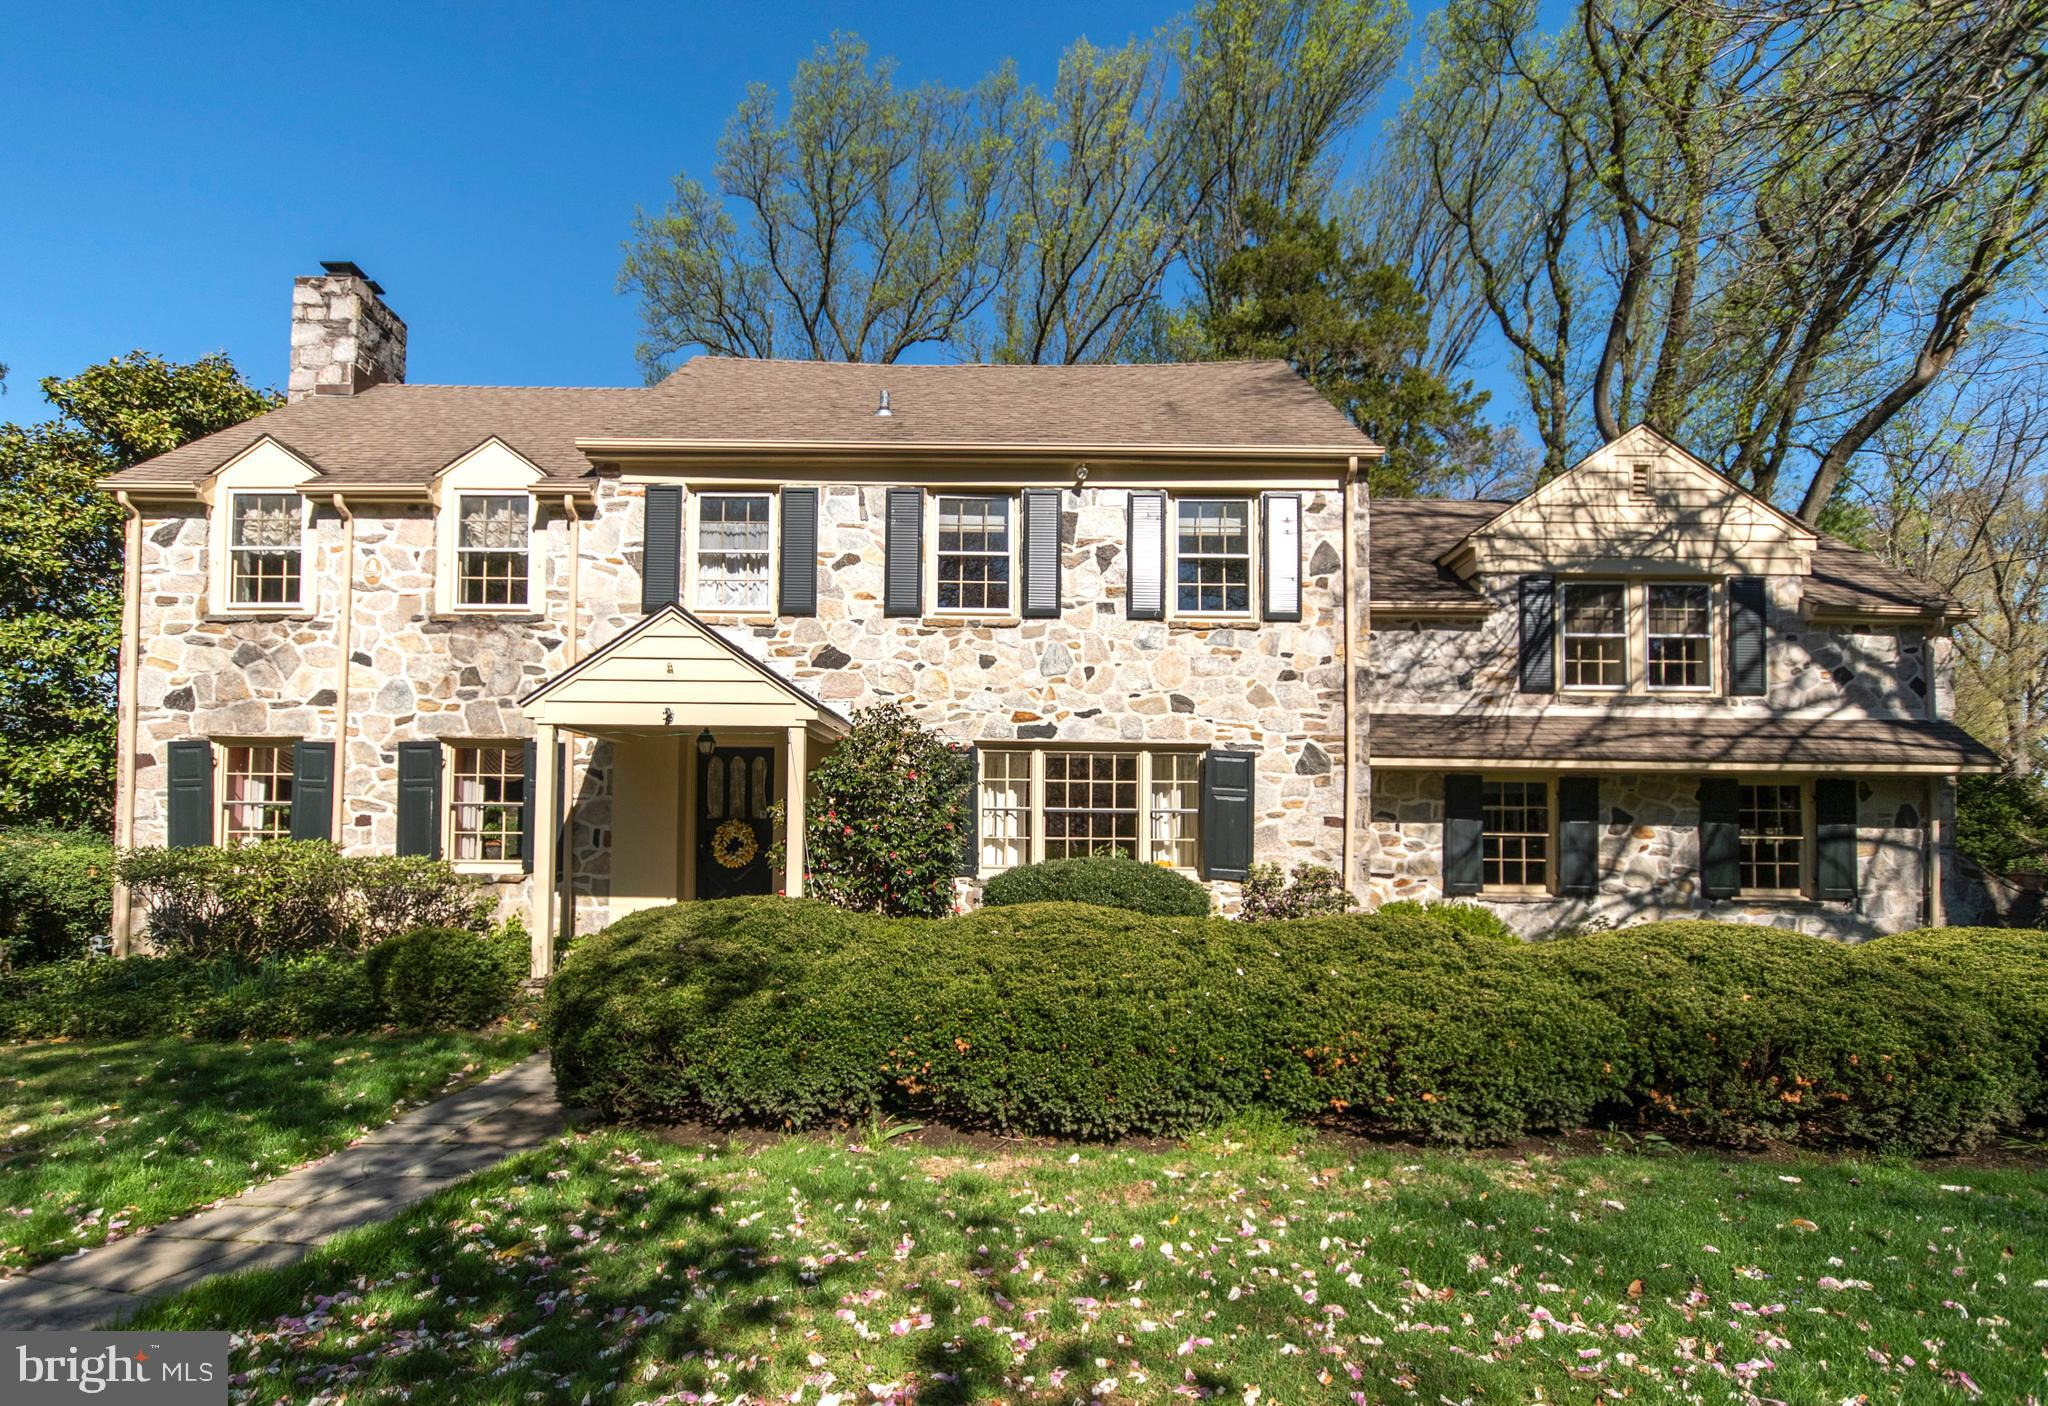 946 FROG HOLLOW TERRACE, RYDAL, PA 19046